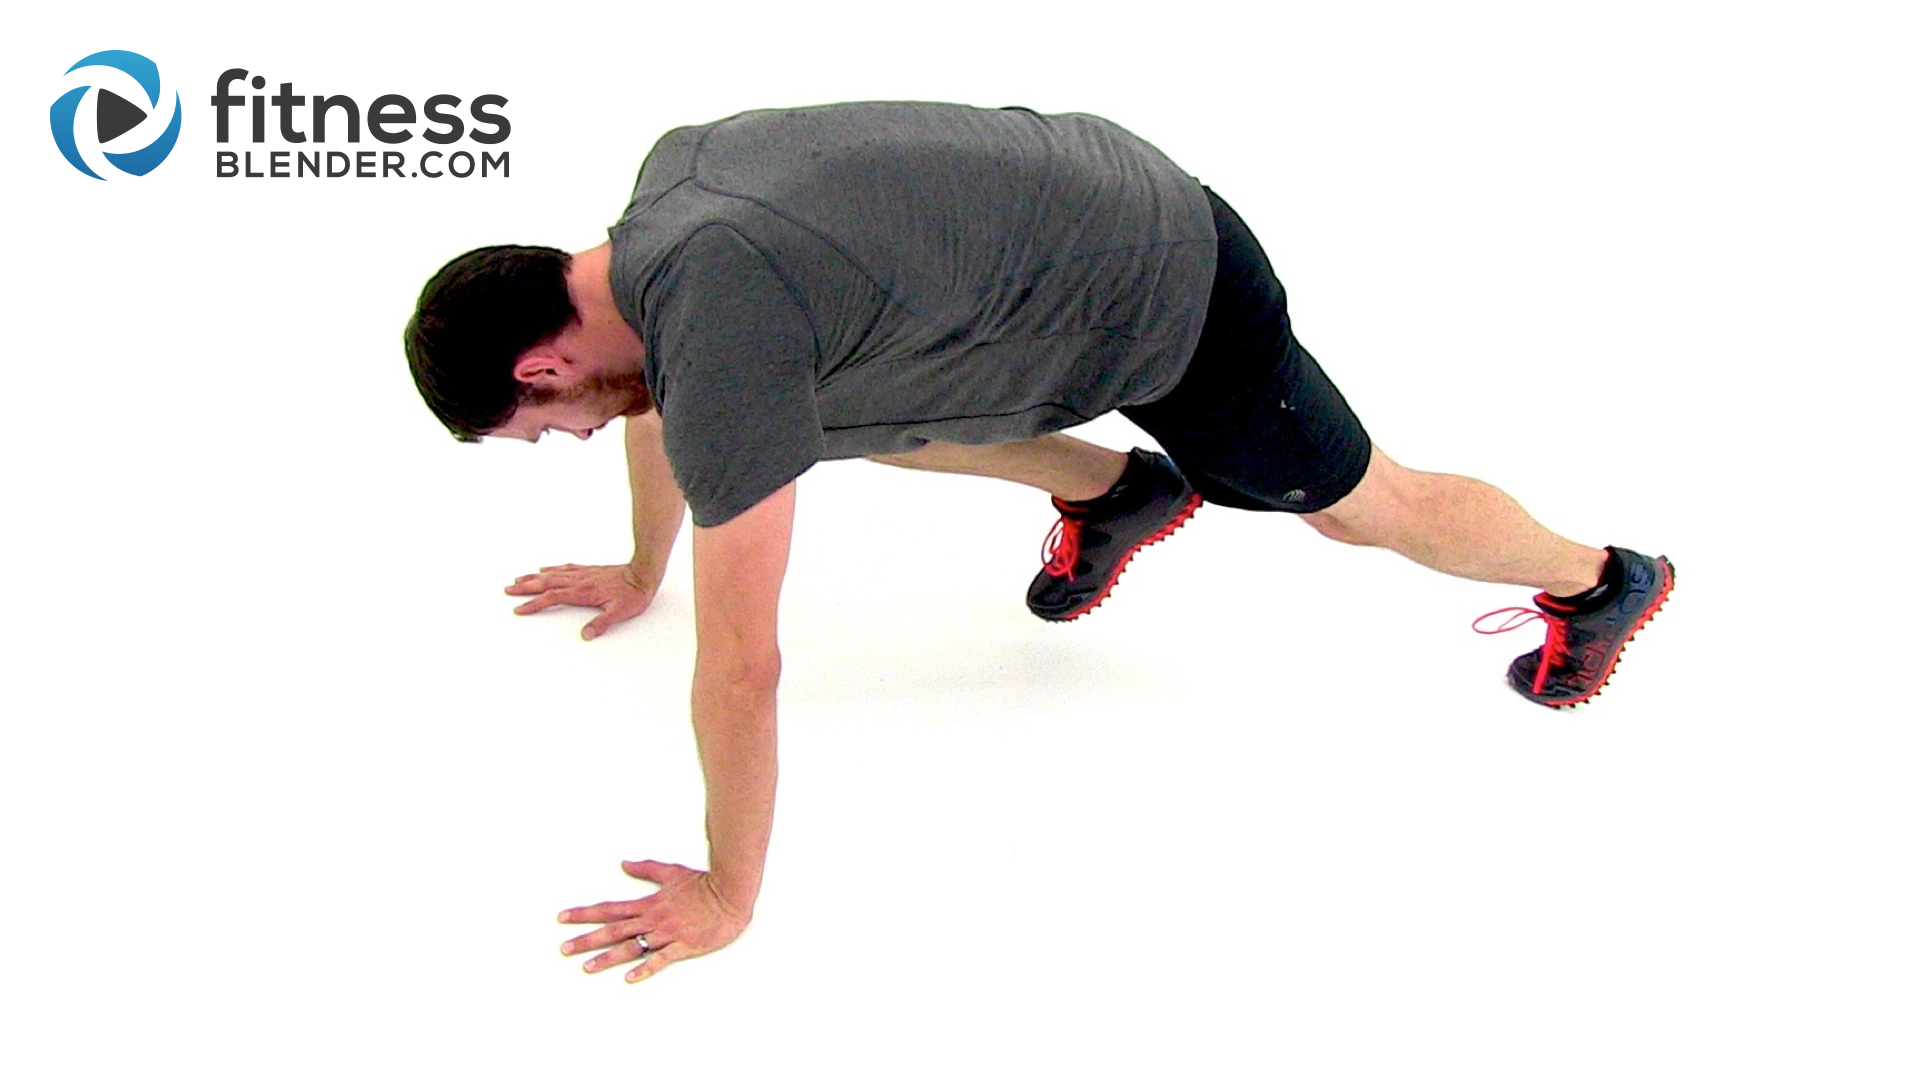 Spartan 500 Workout - 500 Rep Workout Routine | Fitness ...